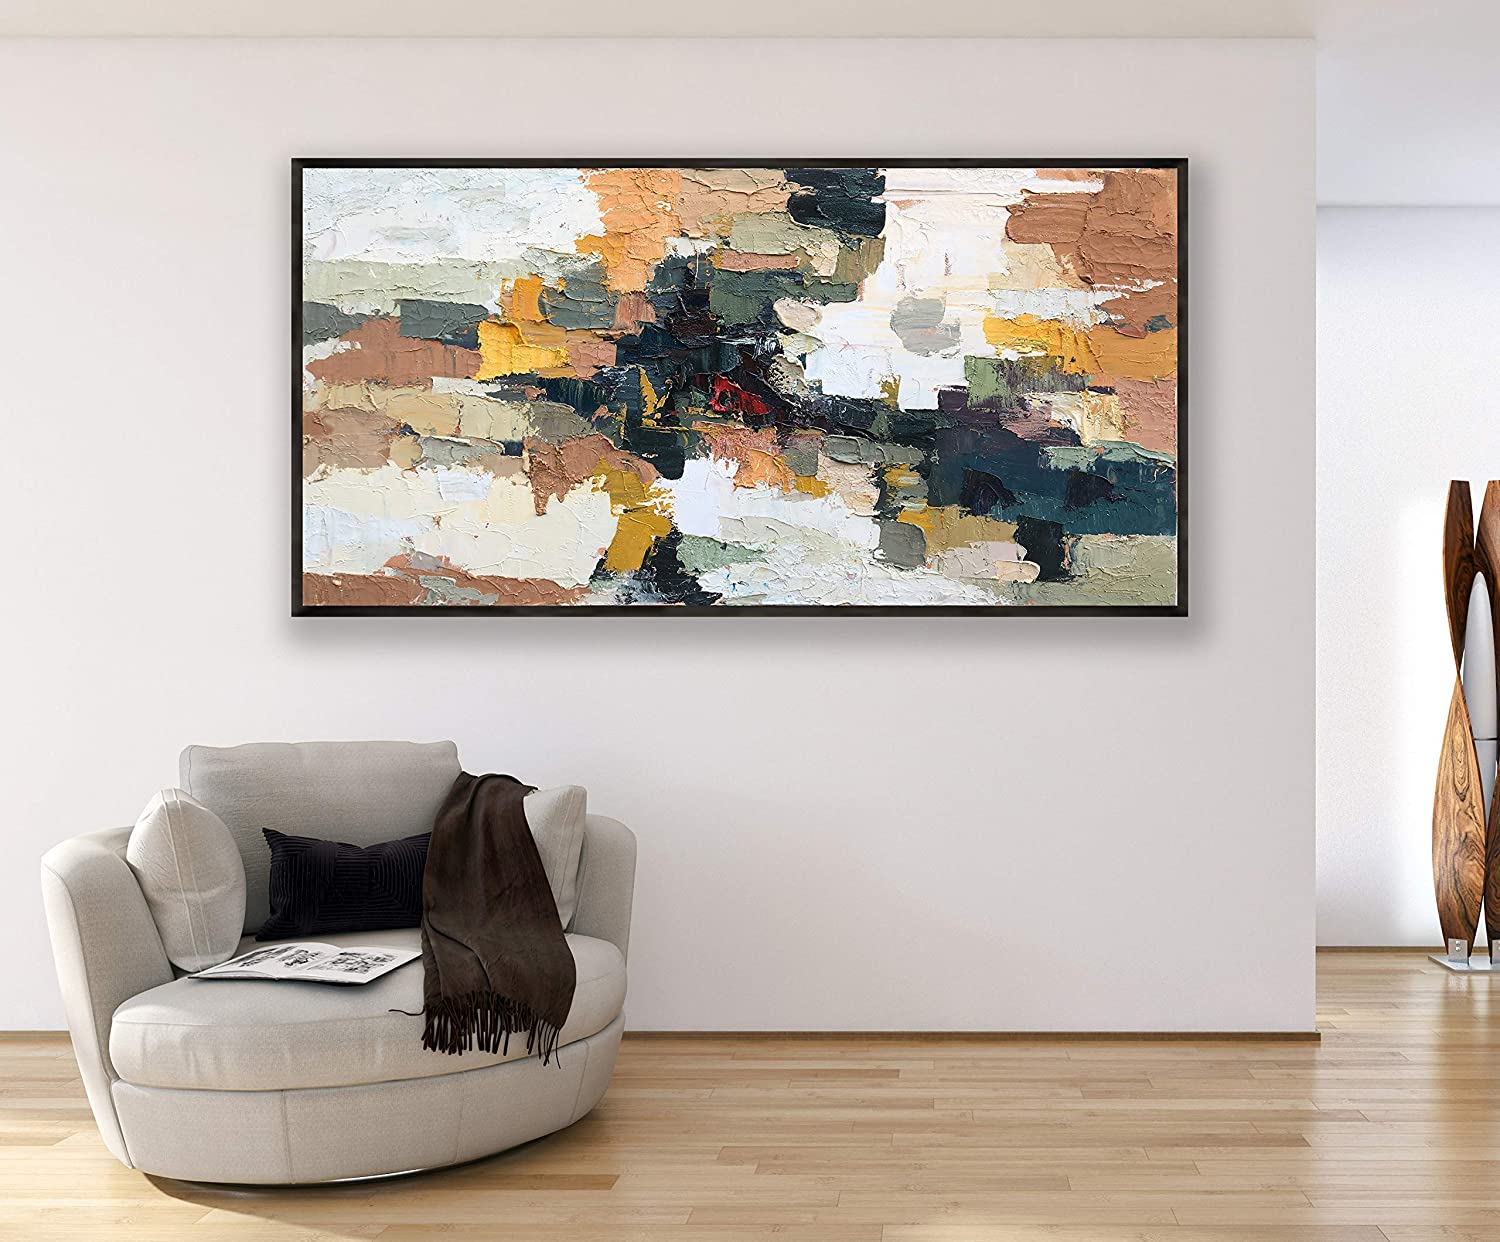 Outstanding Amazon Com Abstract Painting On Canvas 72 Original Download Free Architecture Designs Embacsunscenecom